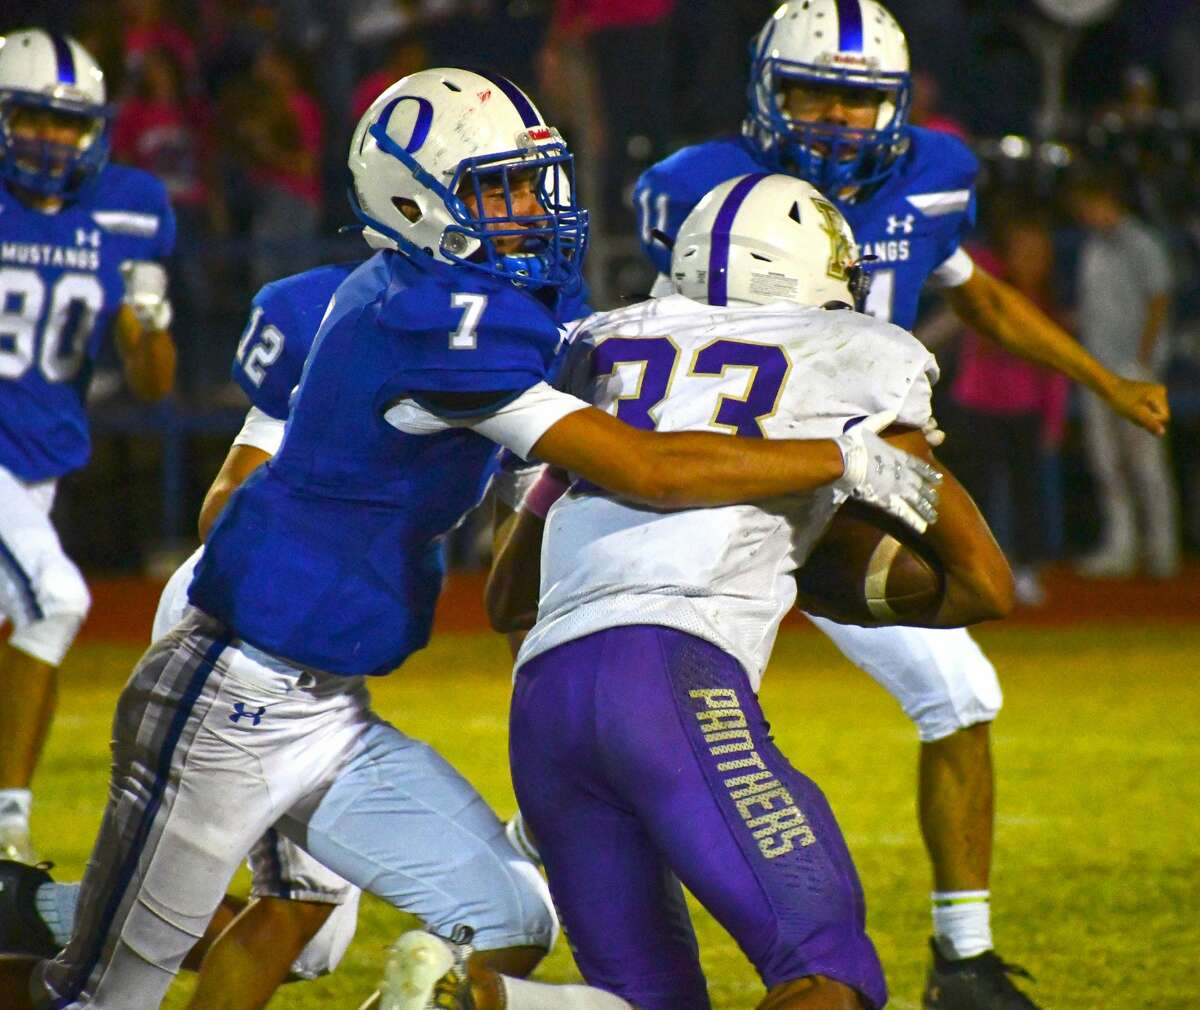 Olton's Andrew Martinez attempts to tackle Panhandle ball carrier Malachi Preston.